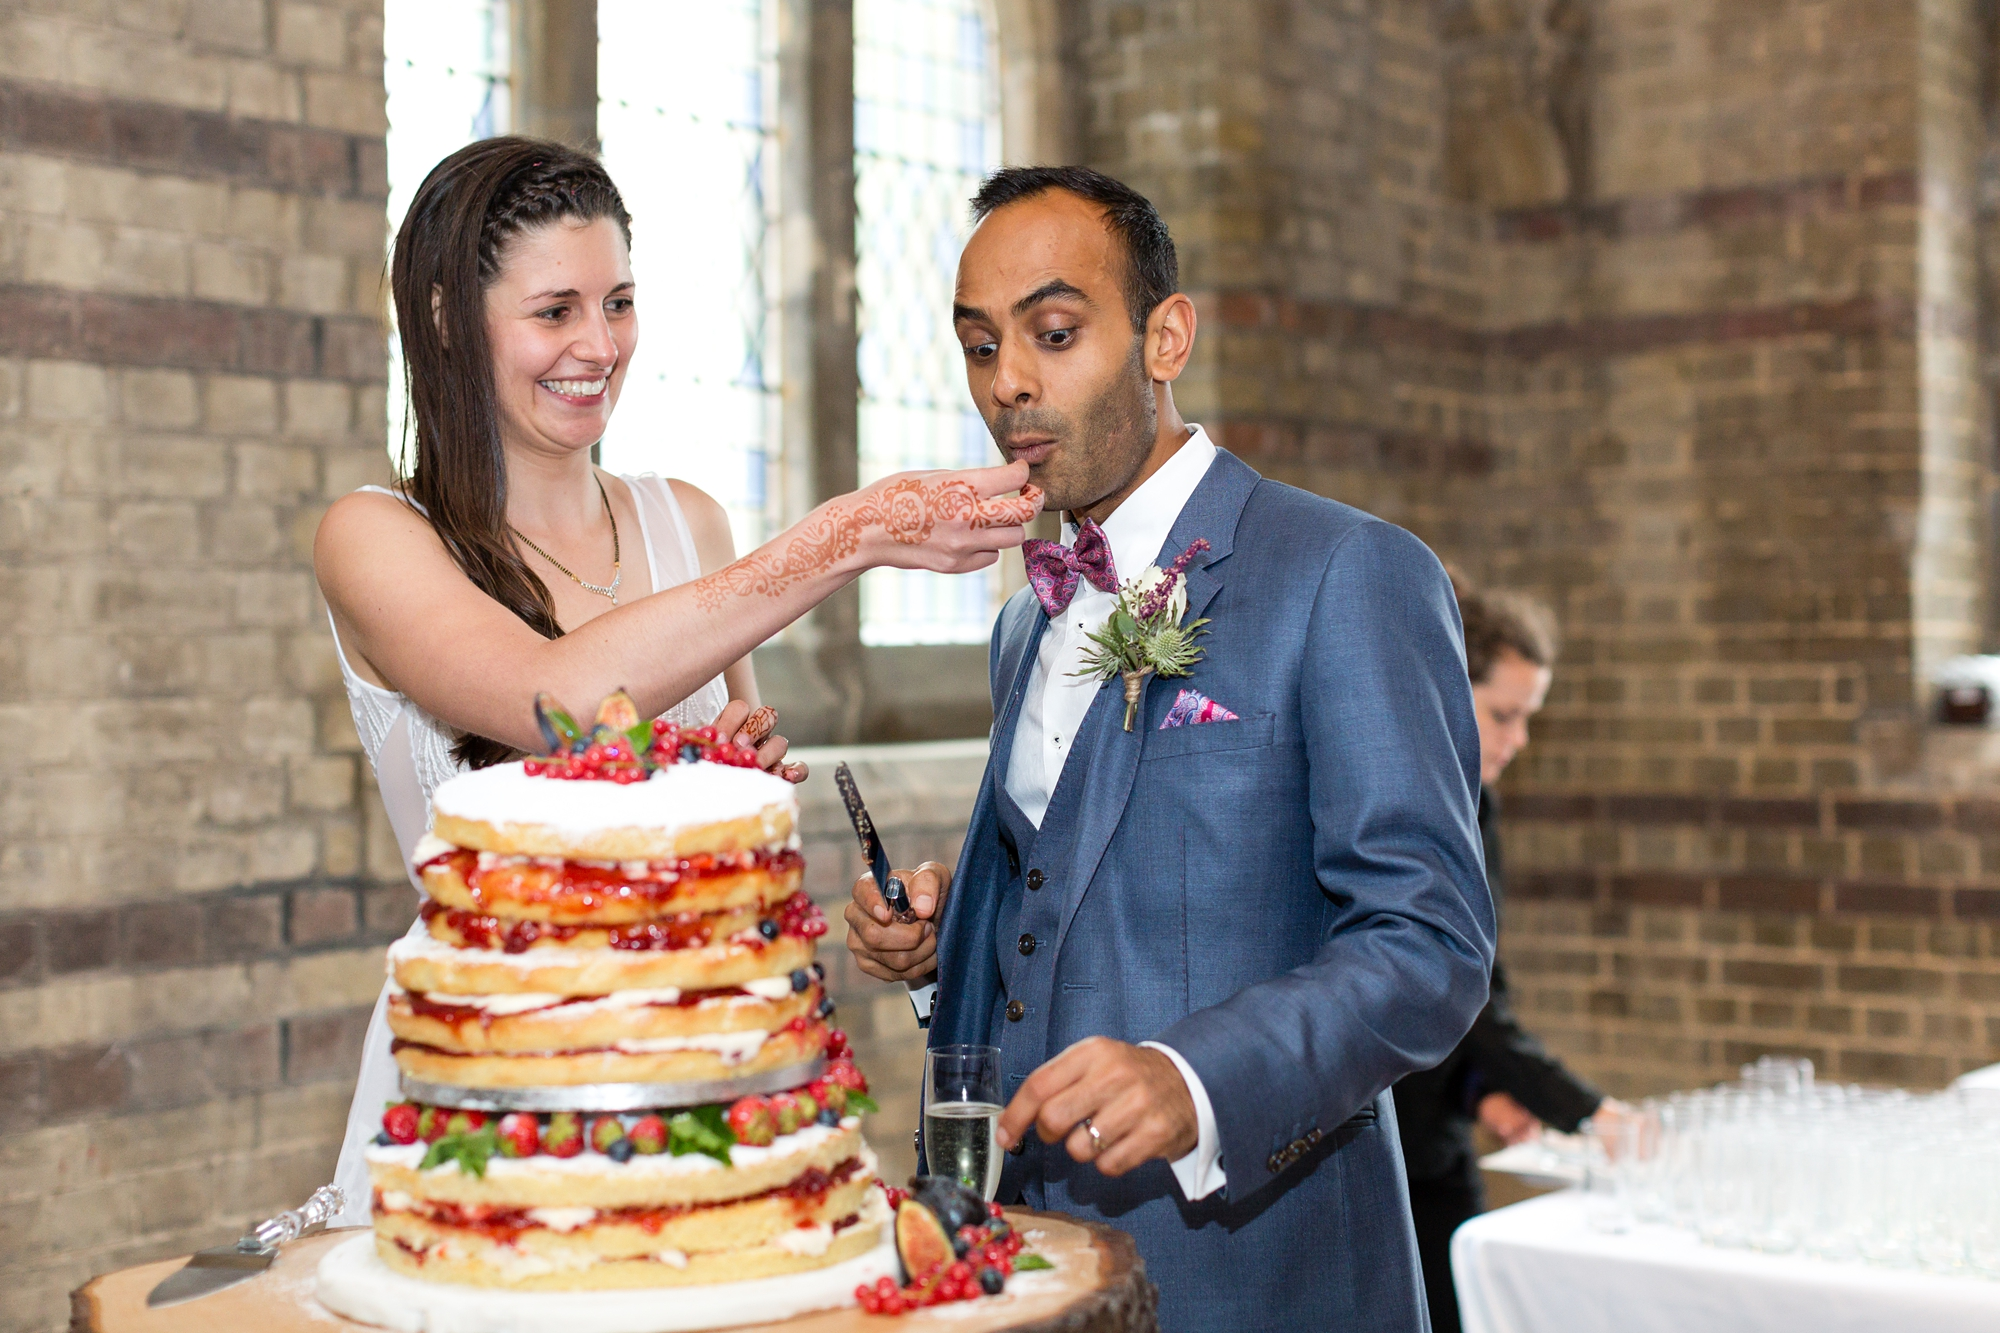 St Stephens Hampstead Wedding Photography funny cake cutting photo